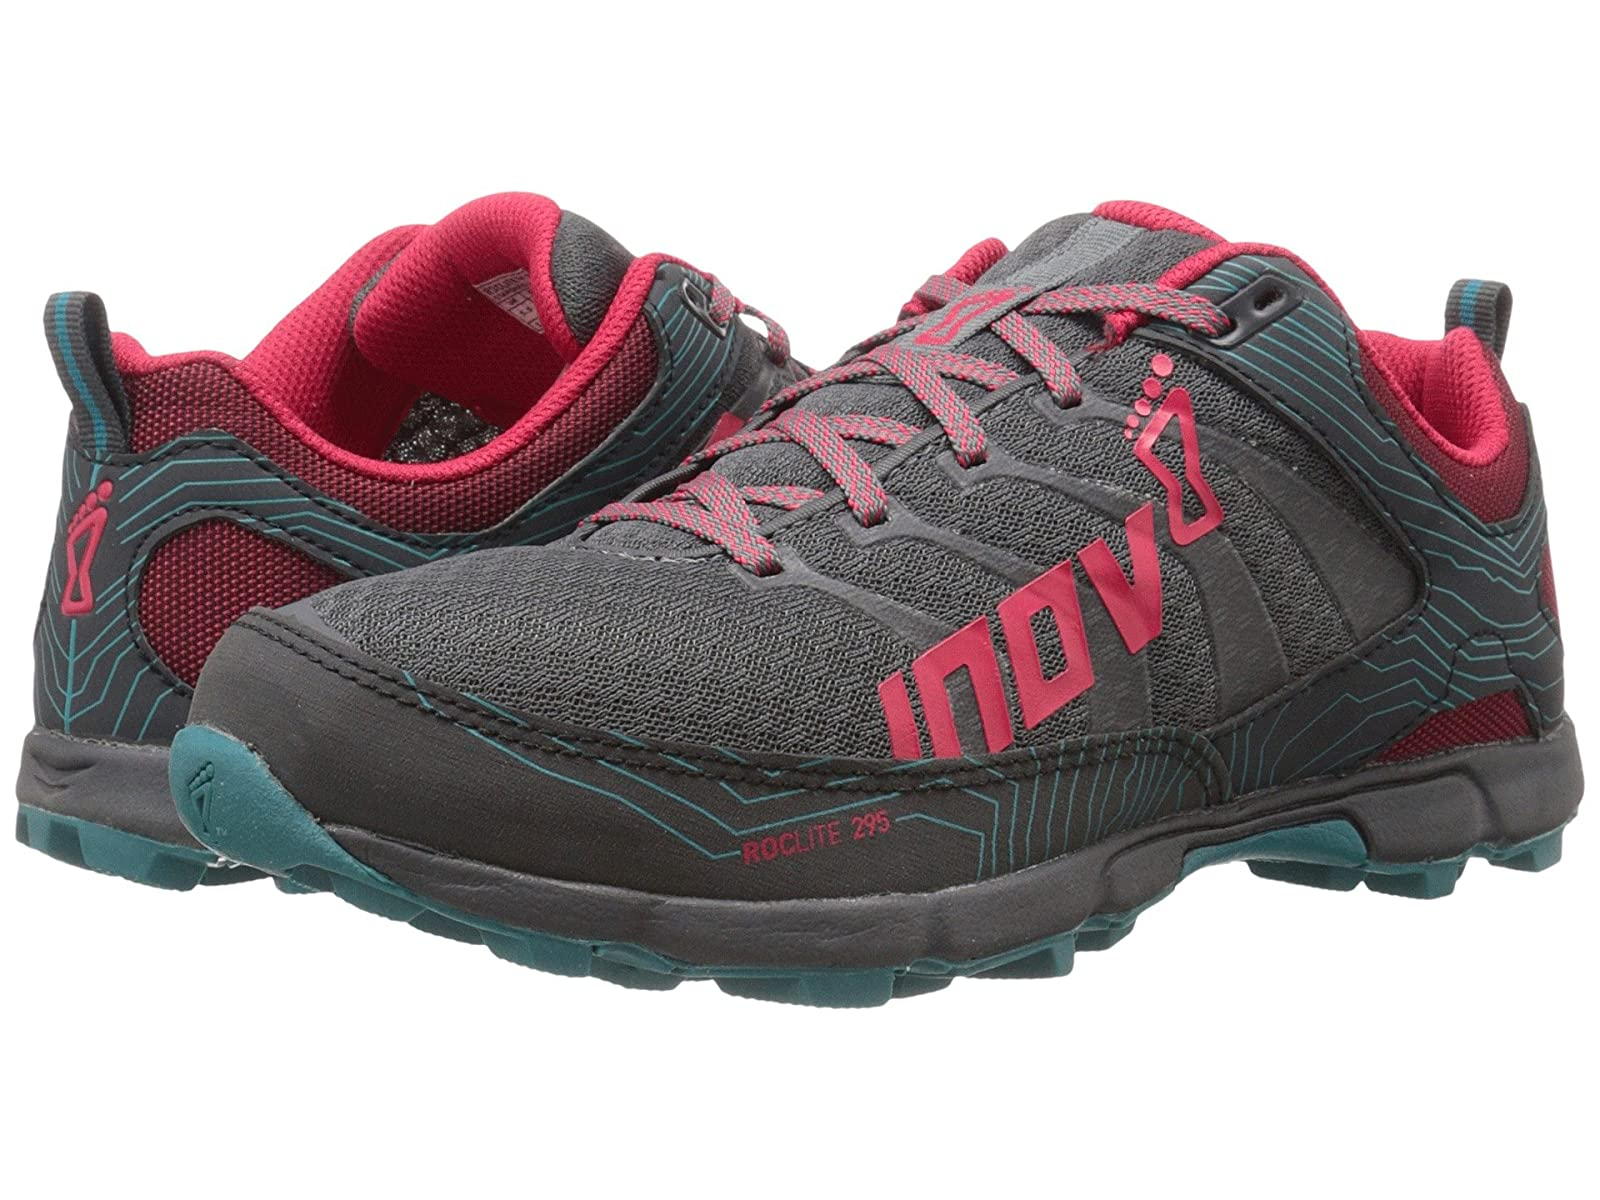 inov-8 Roclite 295Cheap and distinctive eye-catching shoes